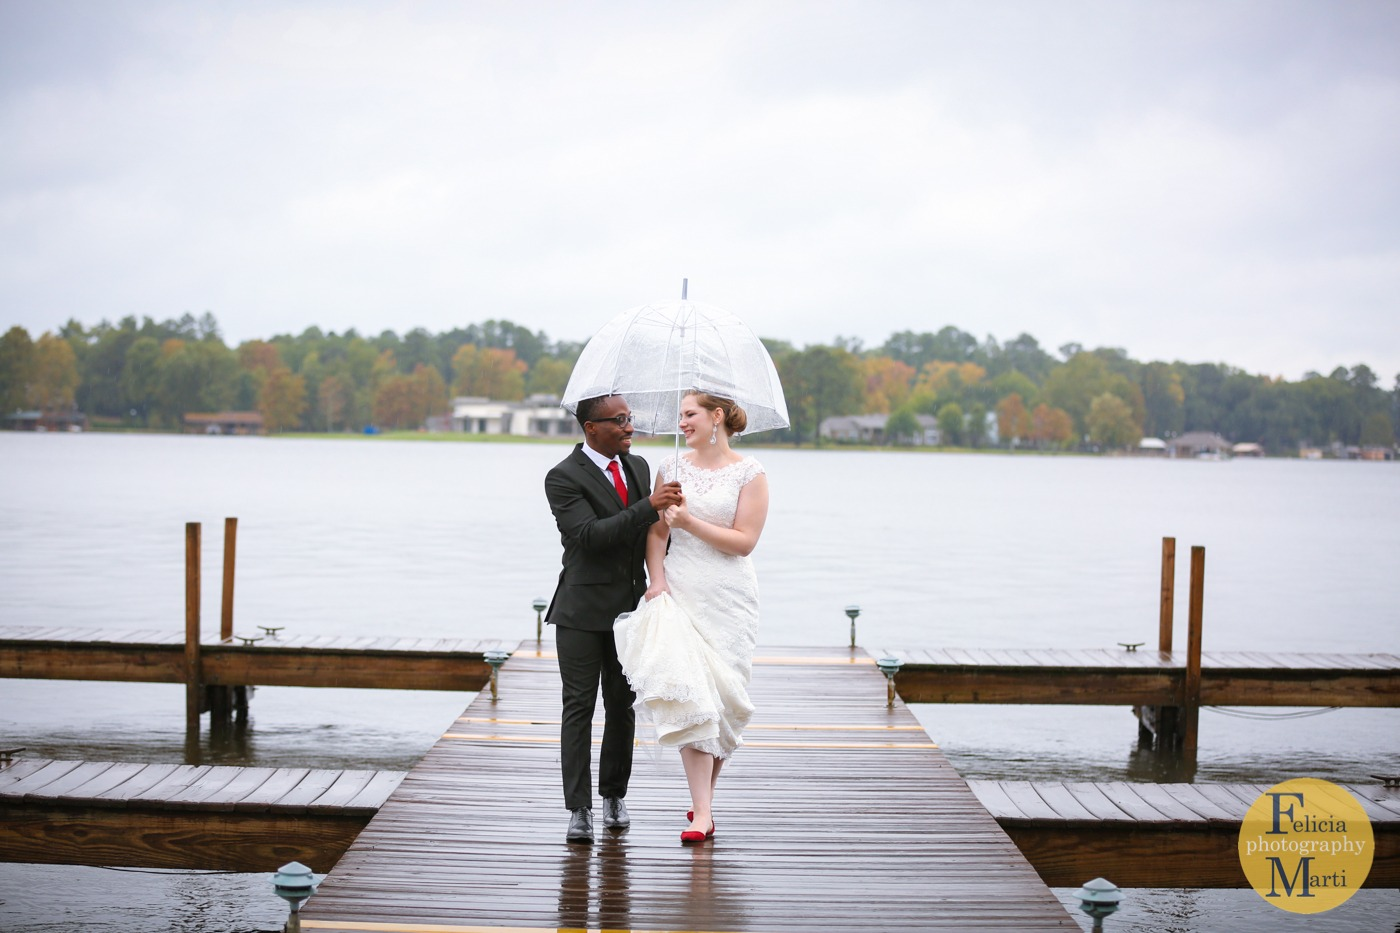 Rainy Romantic Wedding | Lake Cherokee Texas